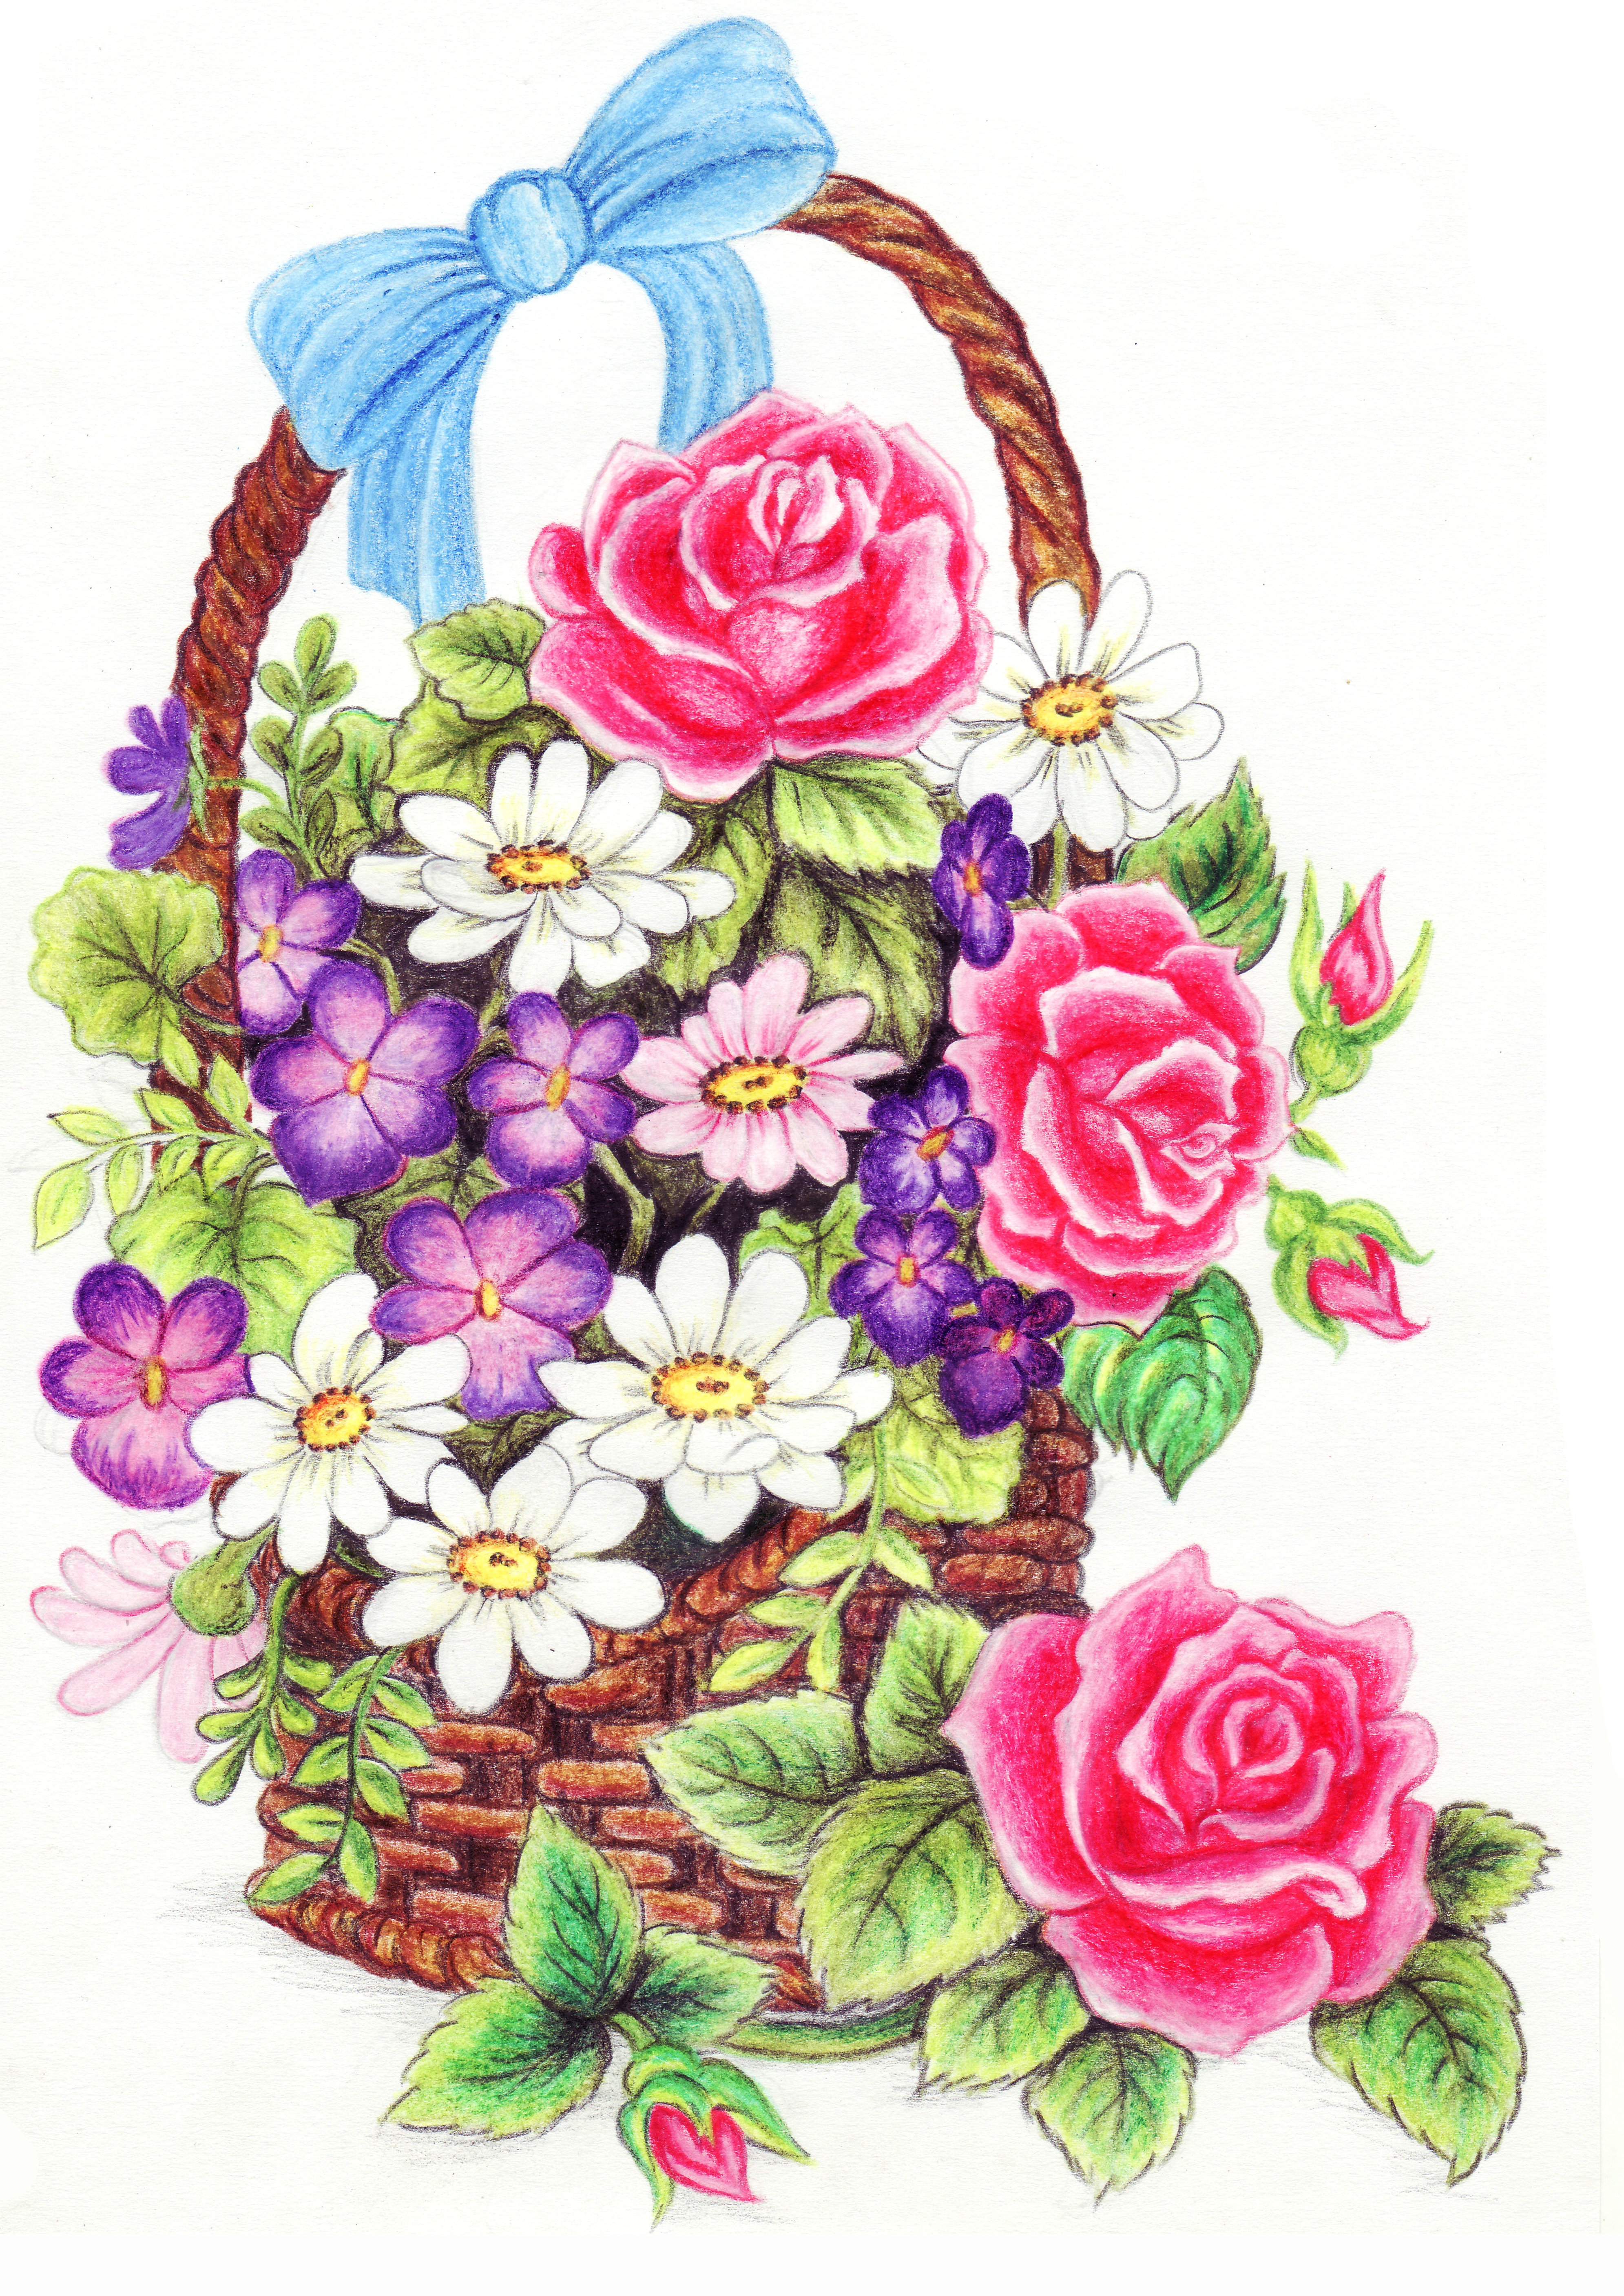 flower basket by lianne29annika on DeviantArt